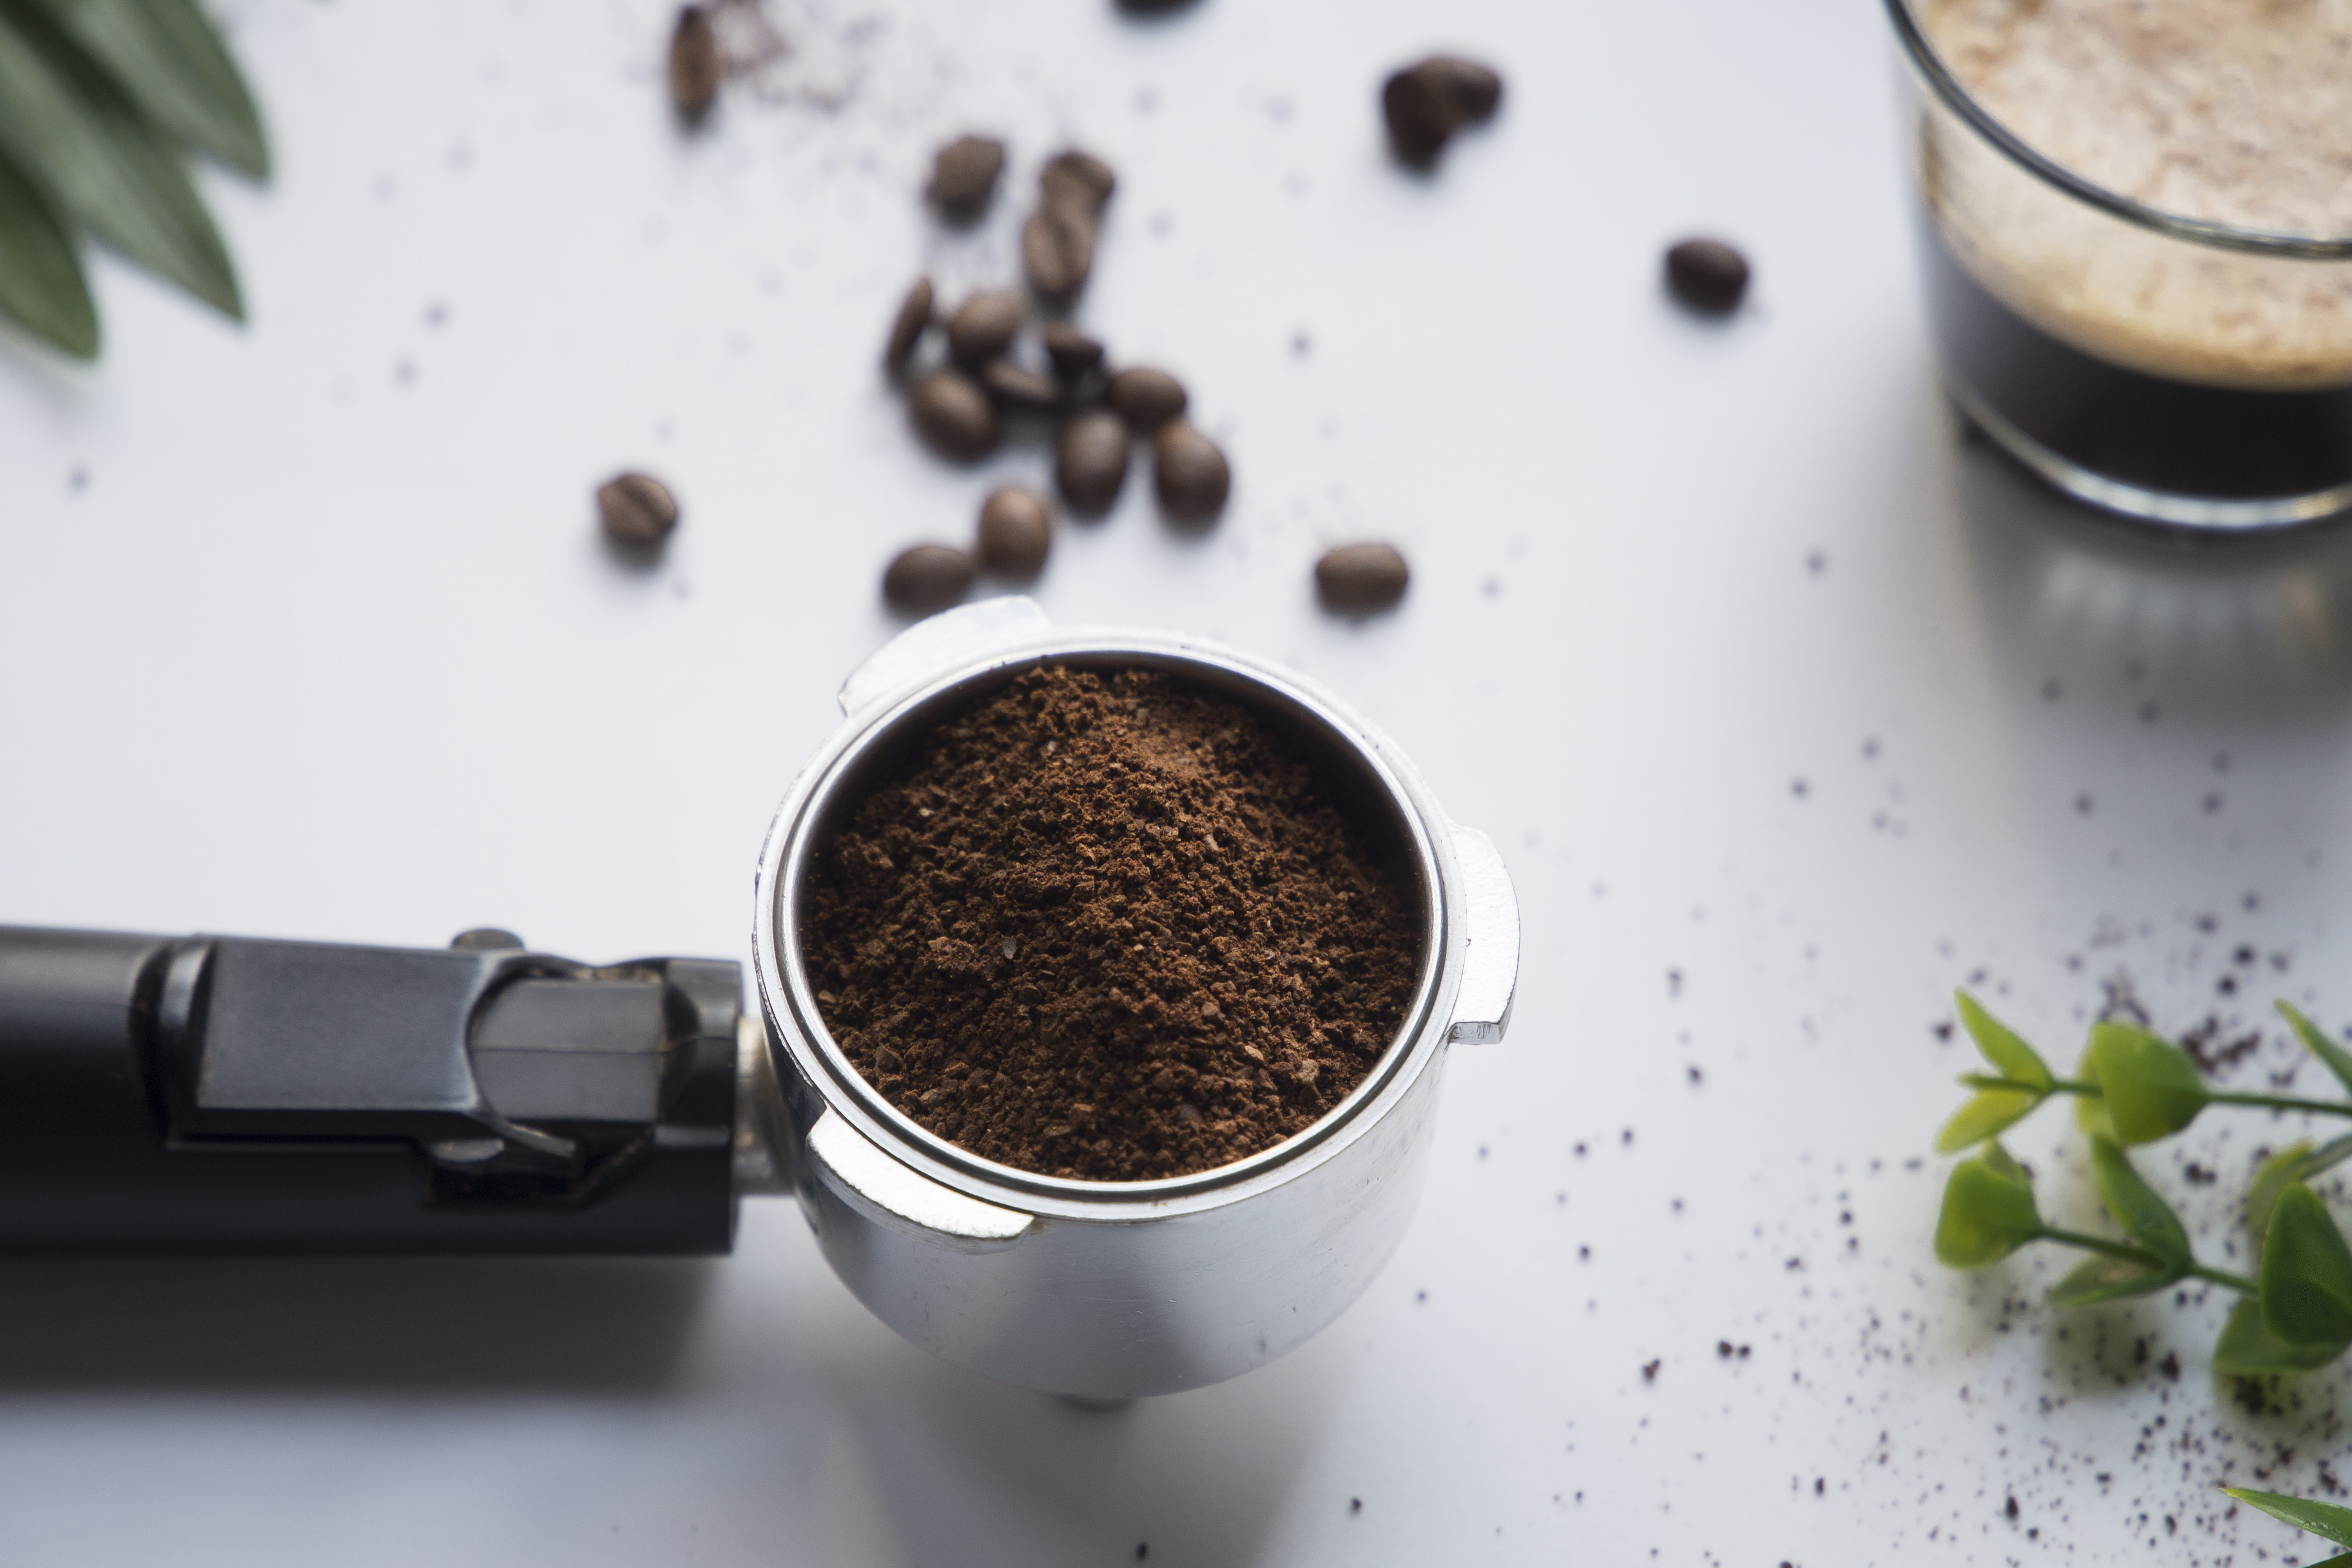 grained coffee in gray stainless steel container